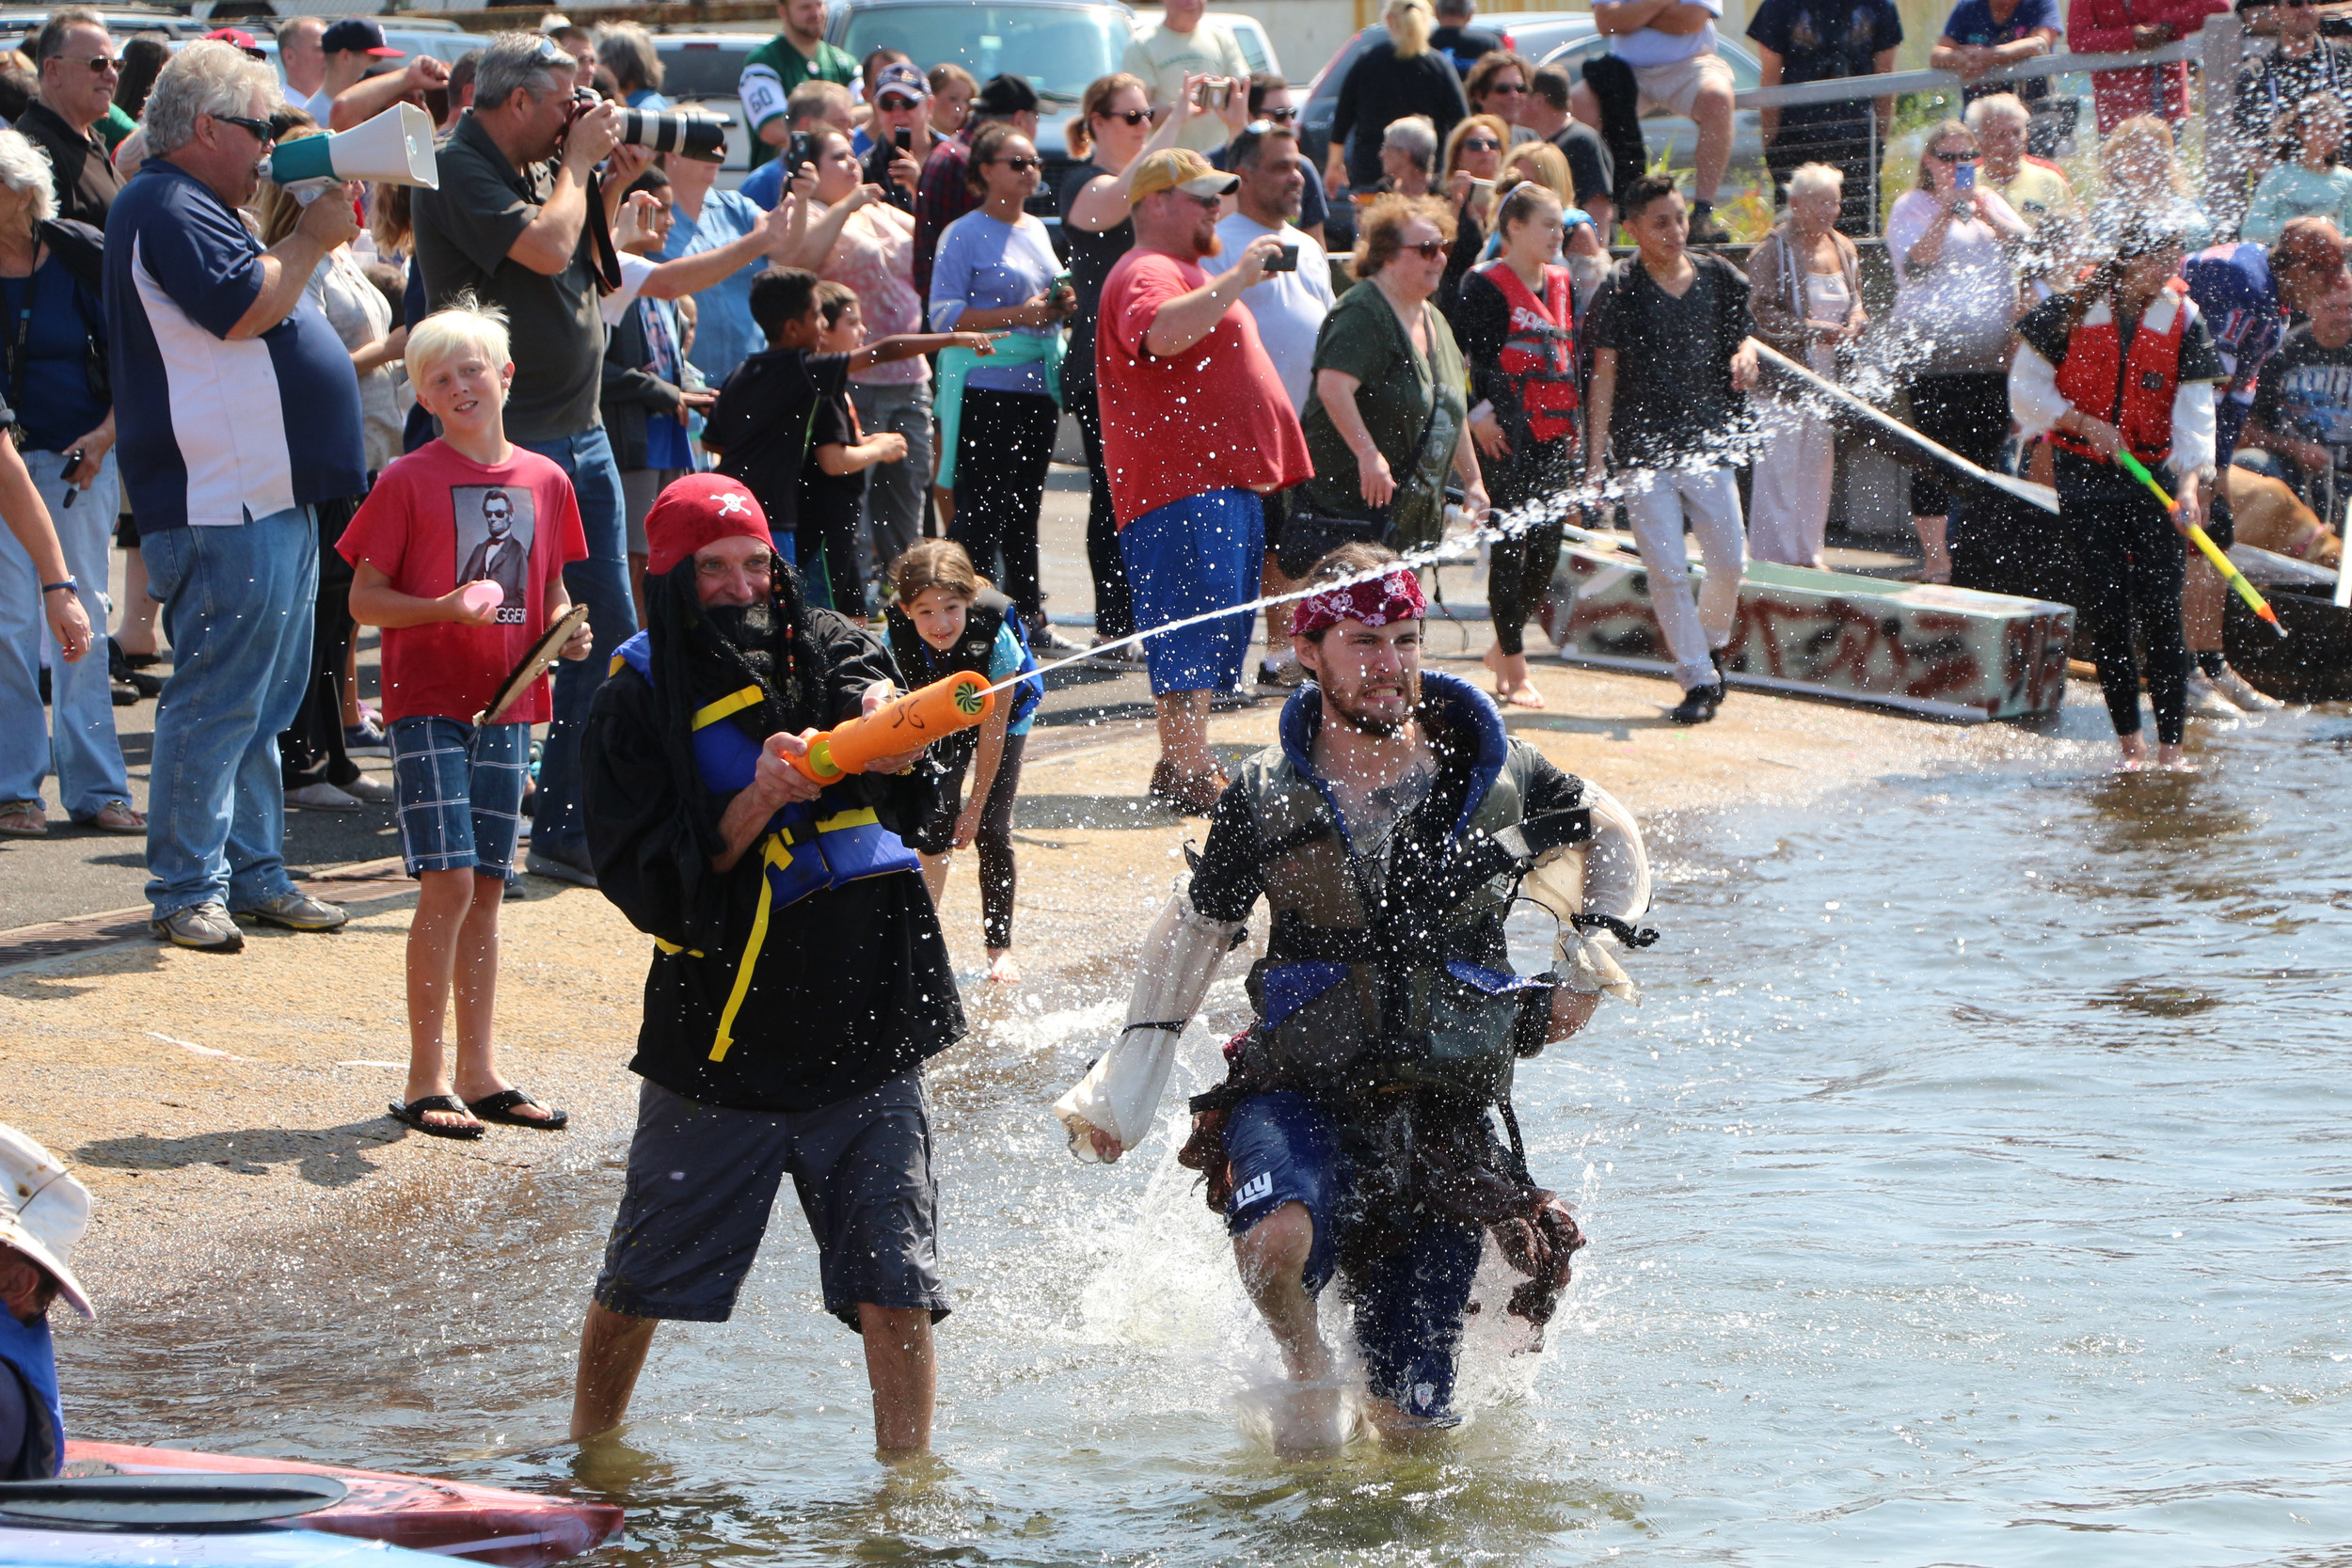 spectators and competitors alike came prepared 